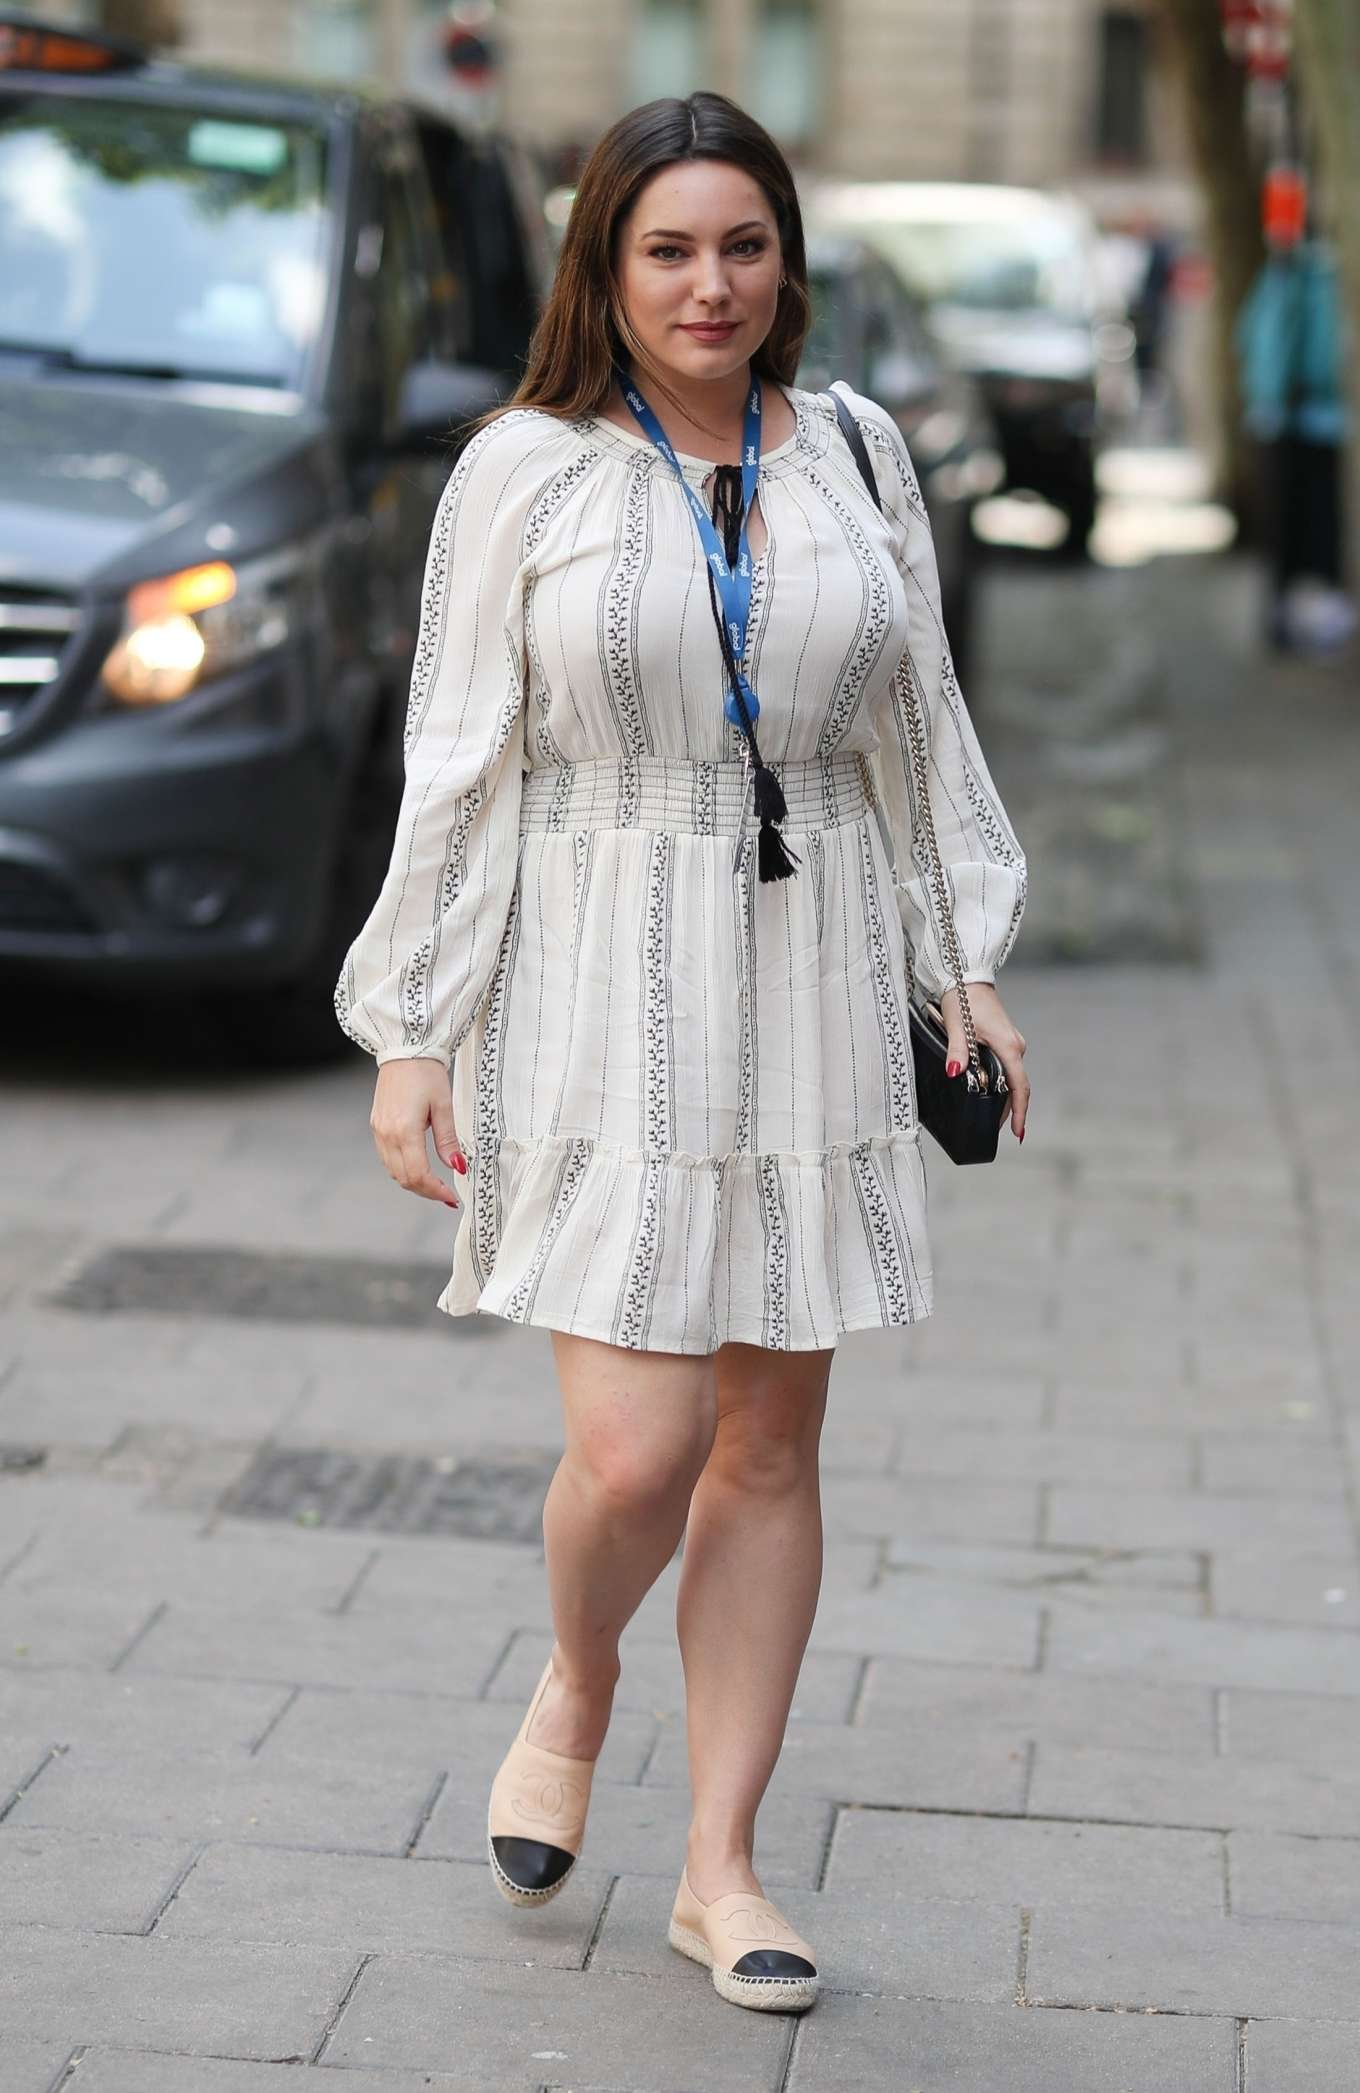 Kelly Brook in White Summer Dress - Out in London